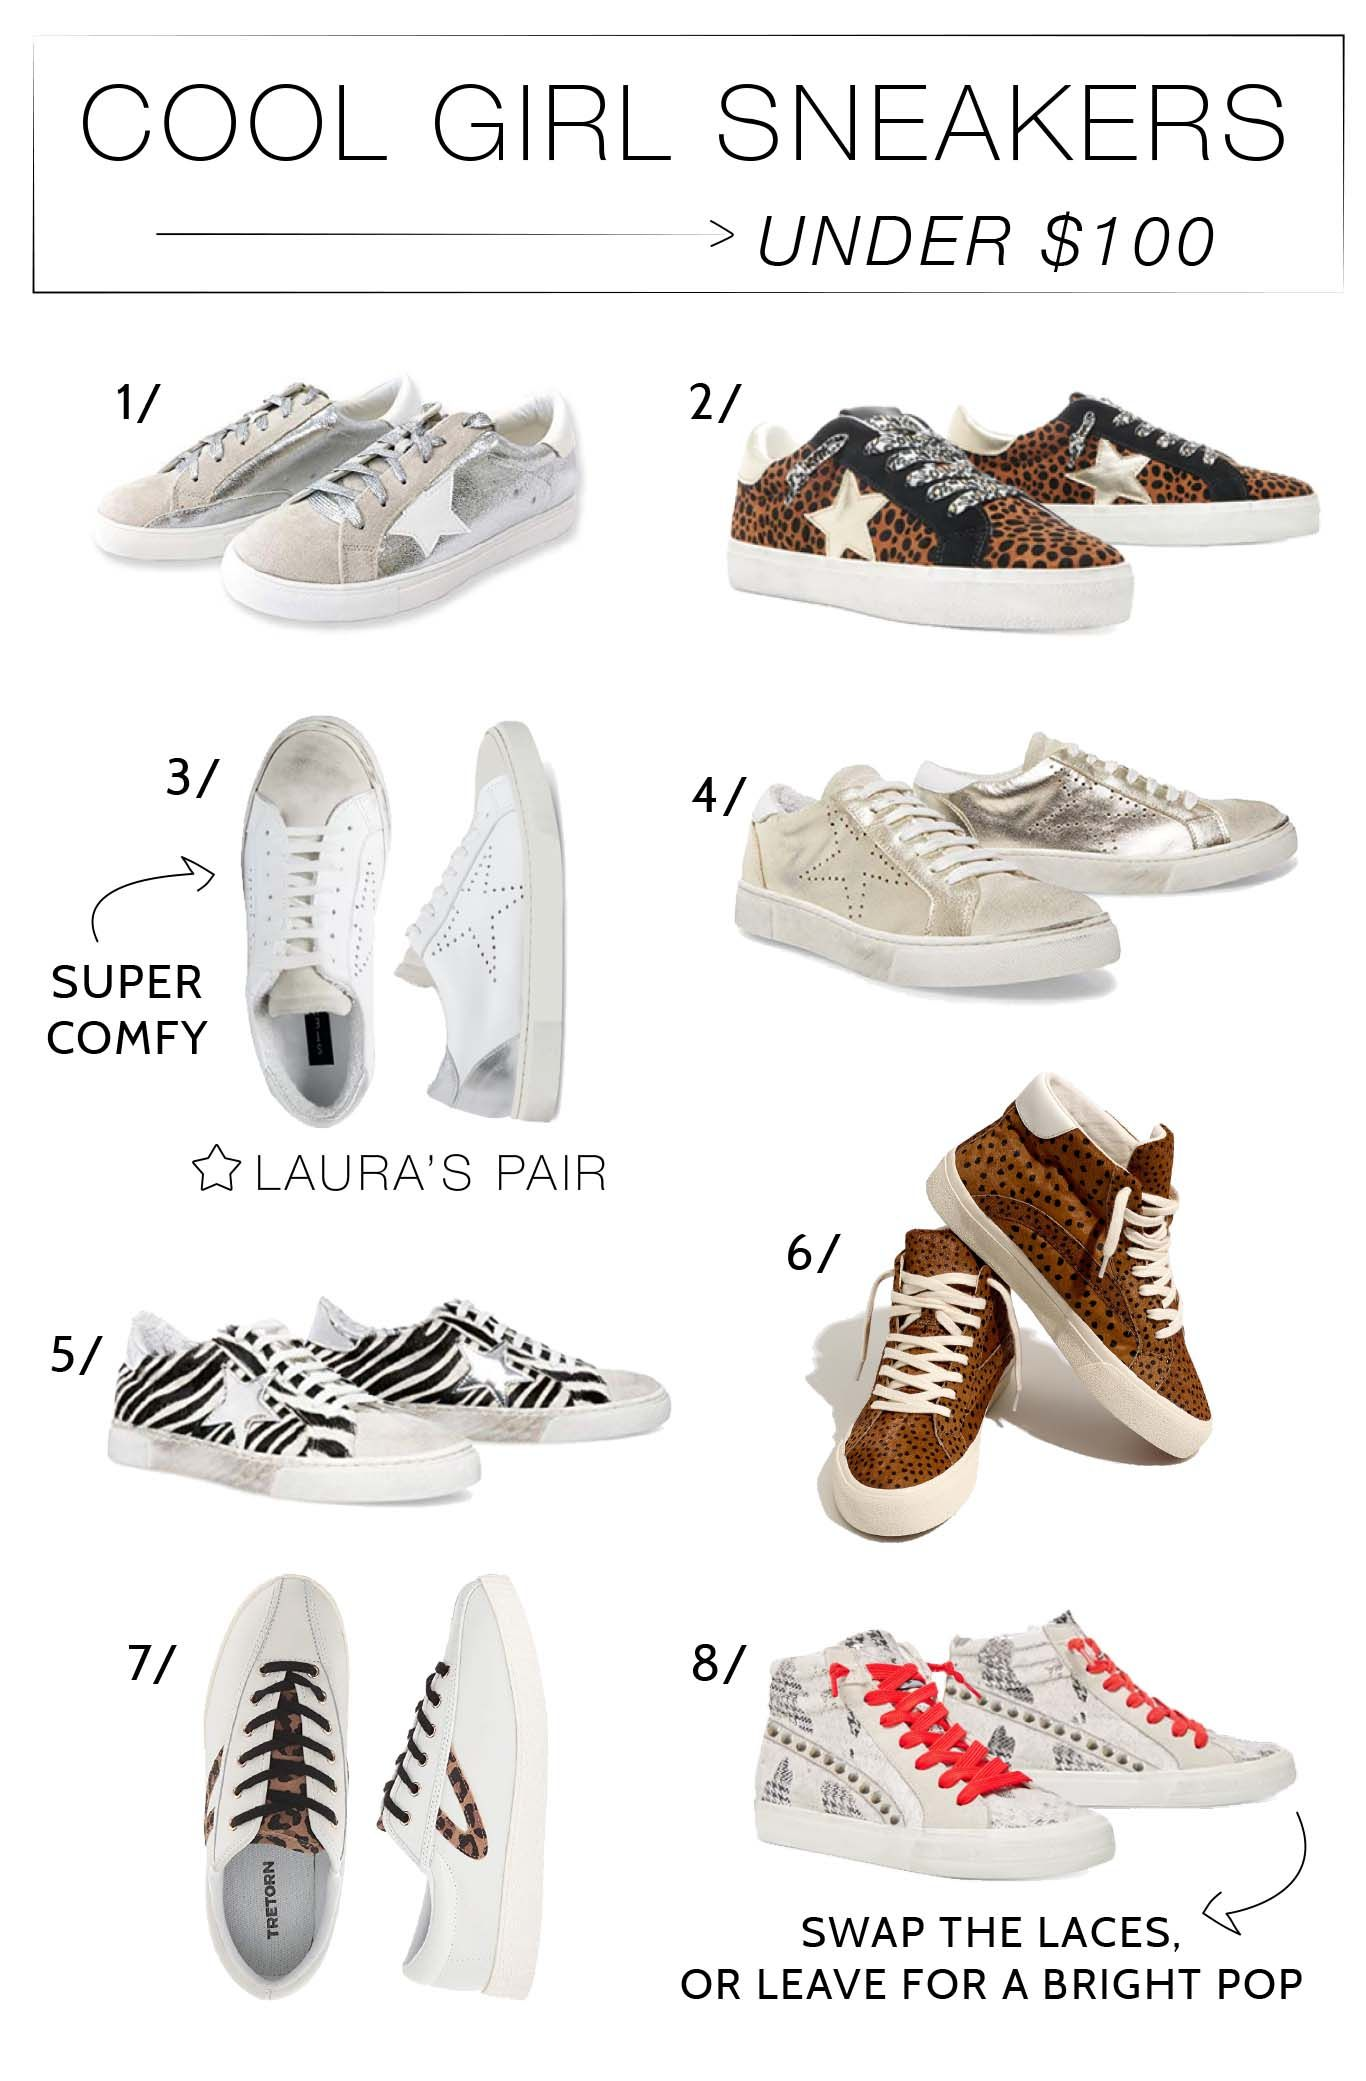 8 Casual-Chic Sneakers We Love (Under